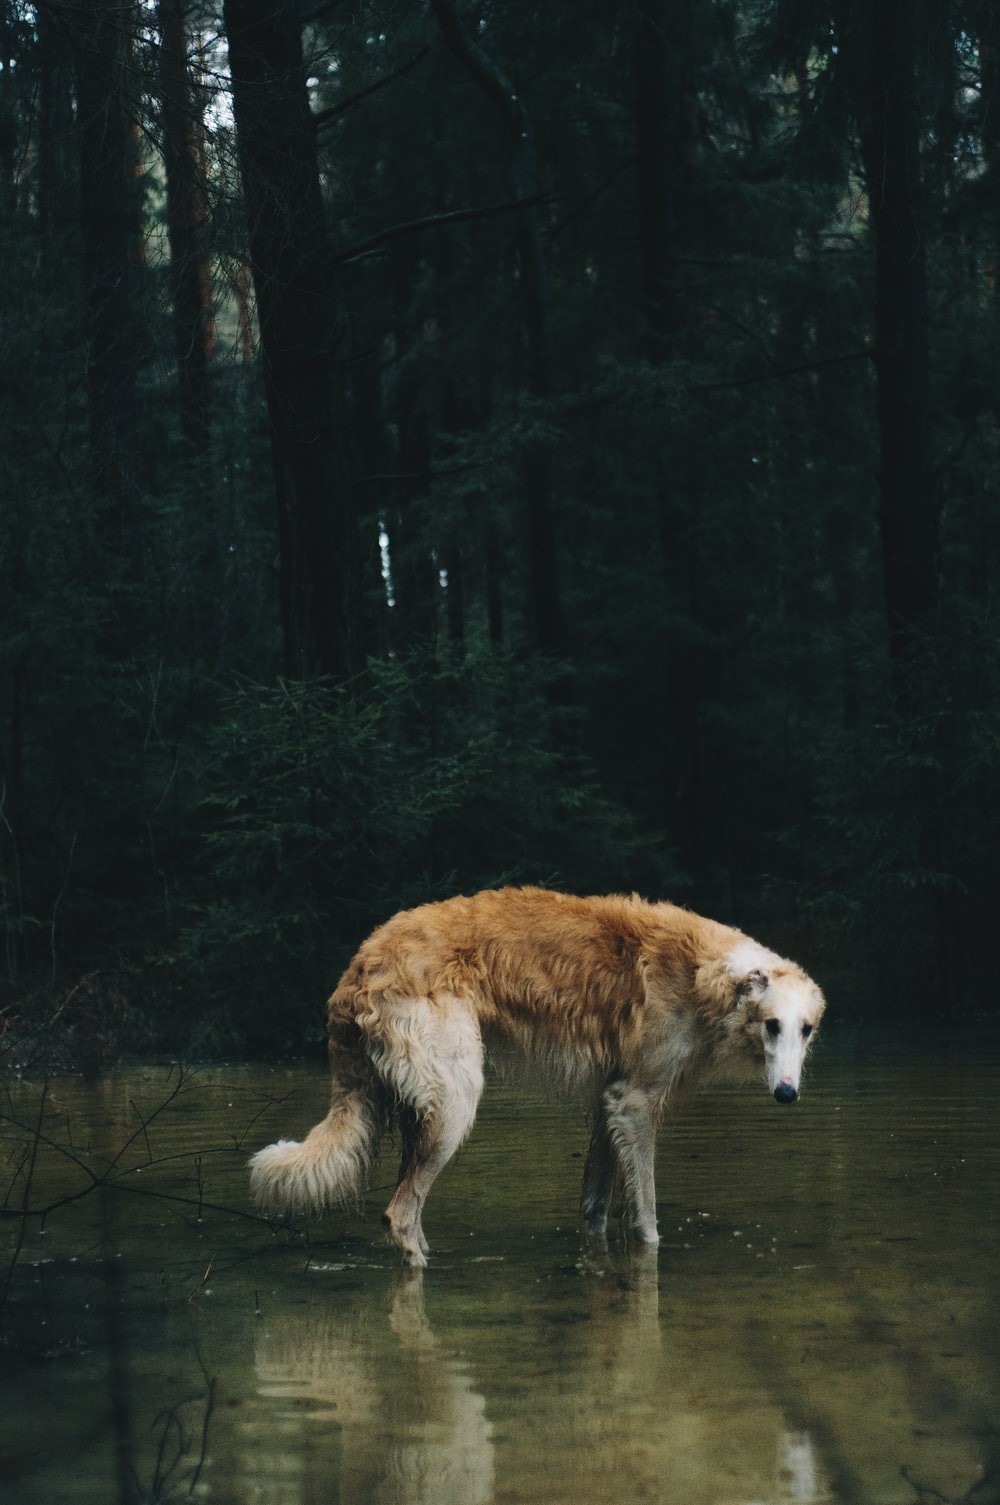 brown and white long coated dog standing on forest during daytime